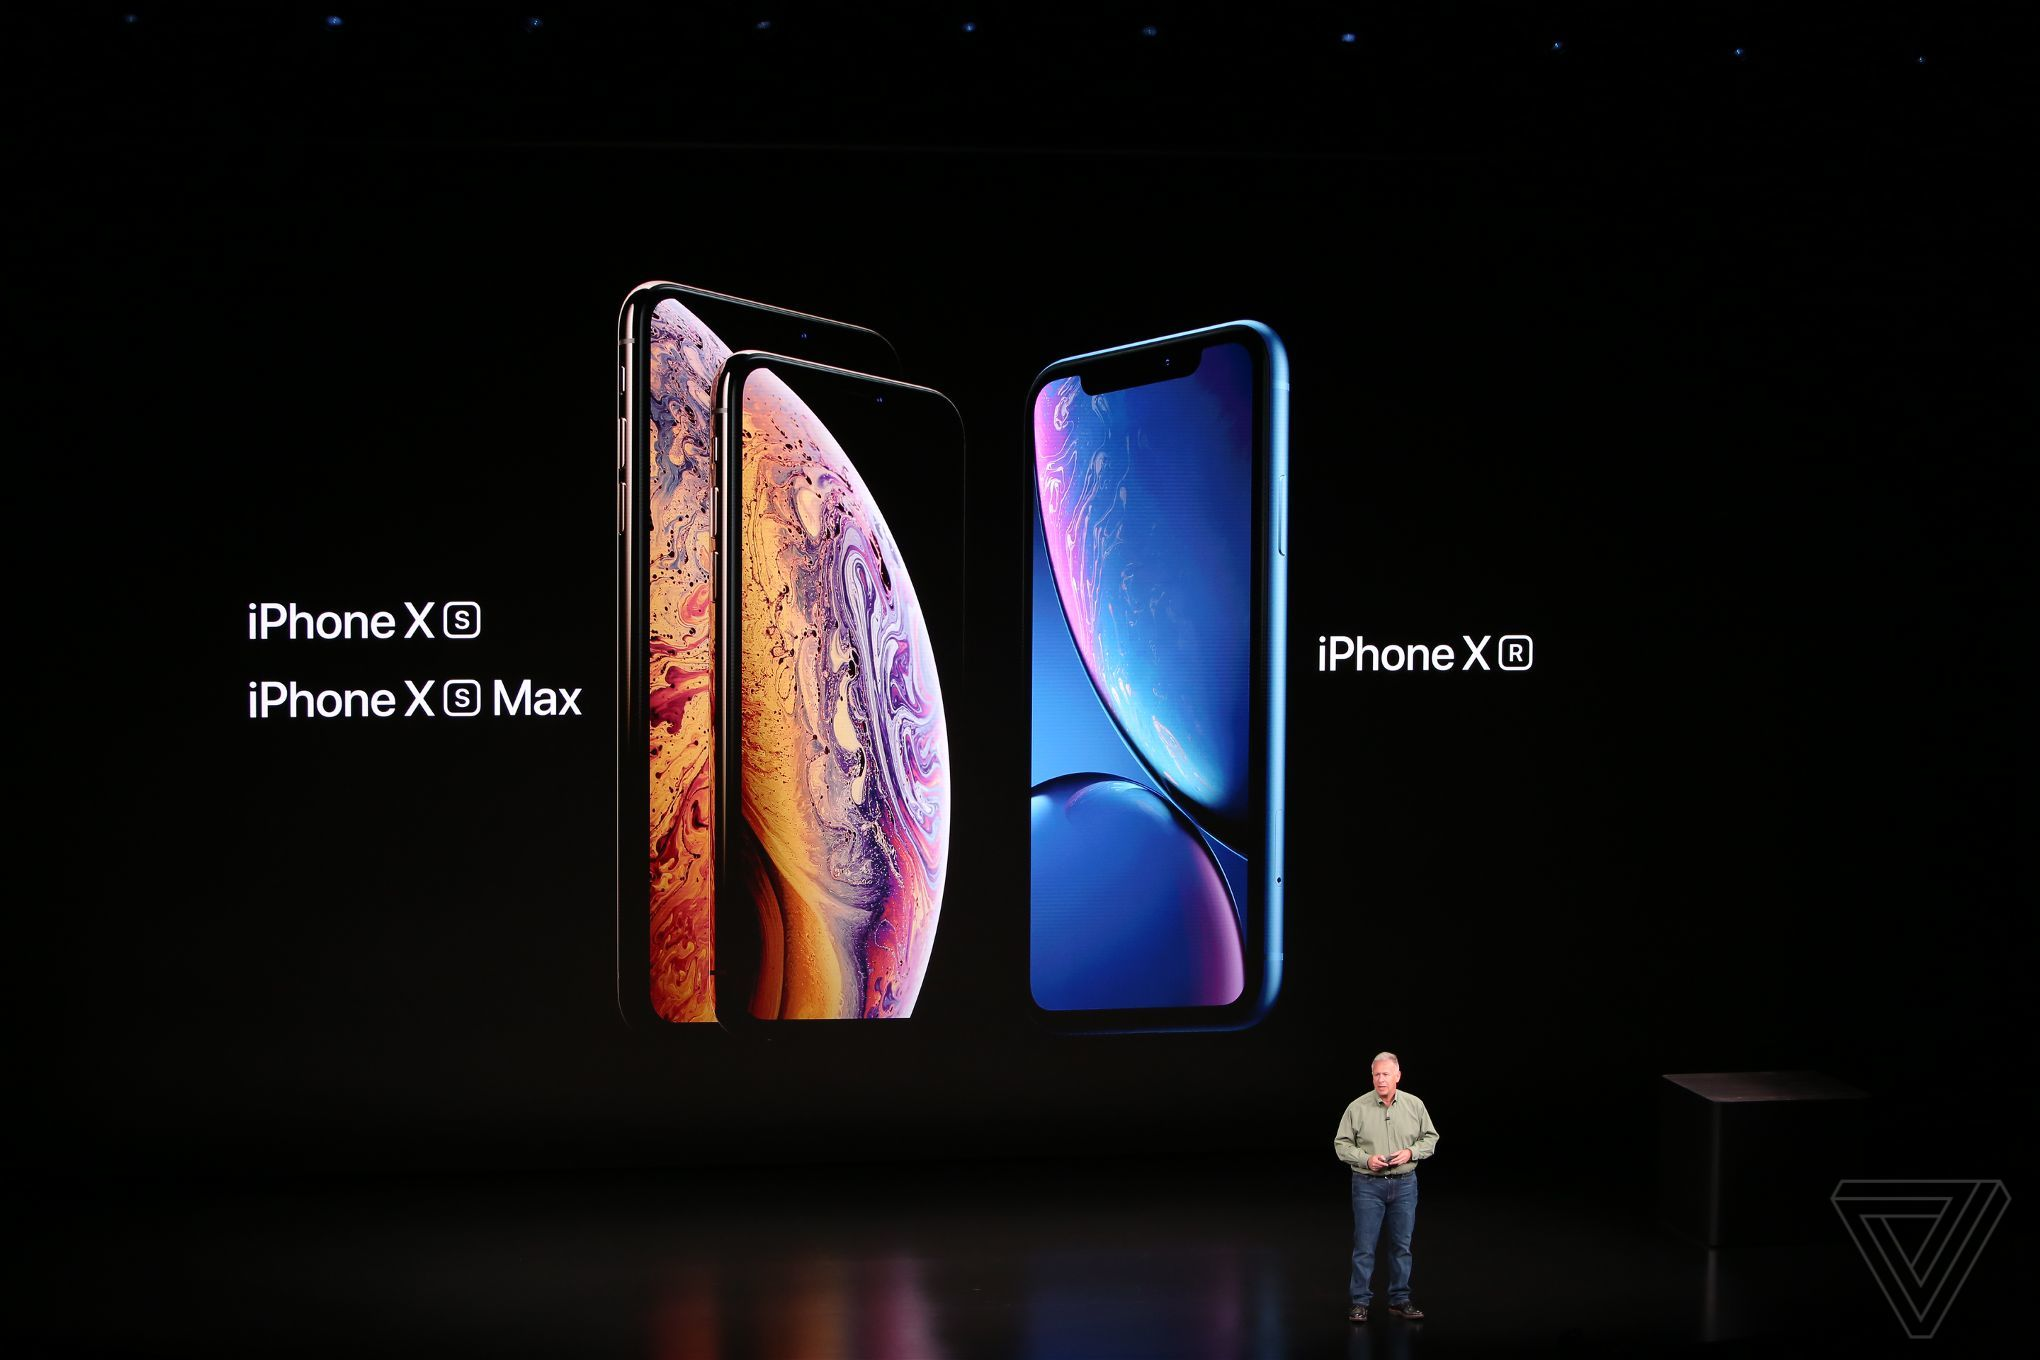 Apple S Iphone Xs And Max Range From 999 To 1 449 The Verge